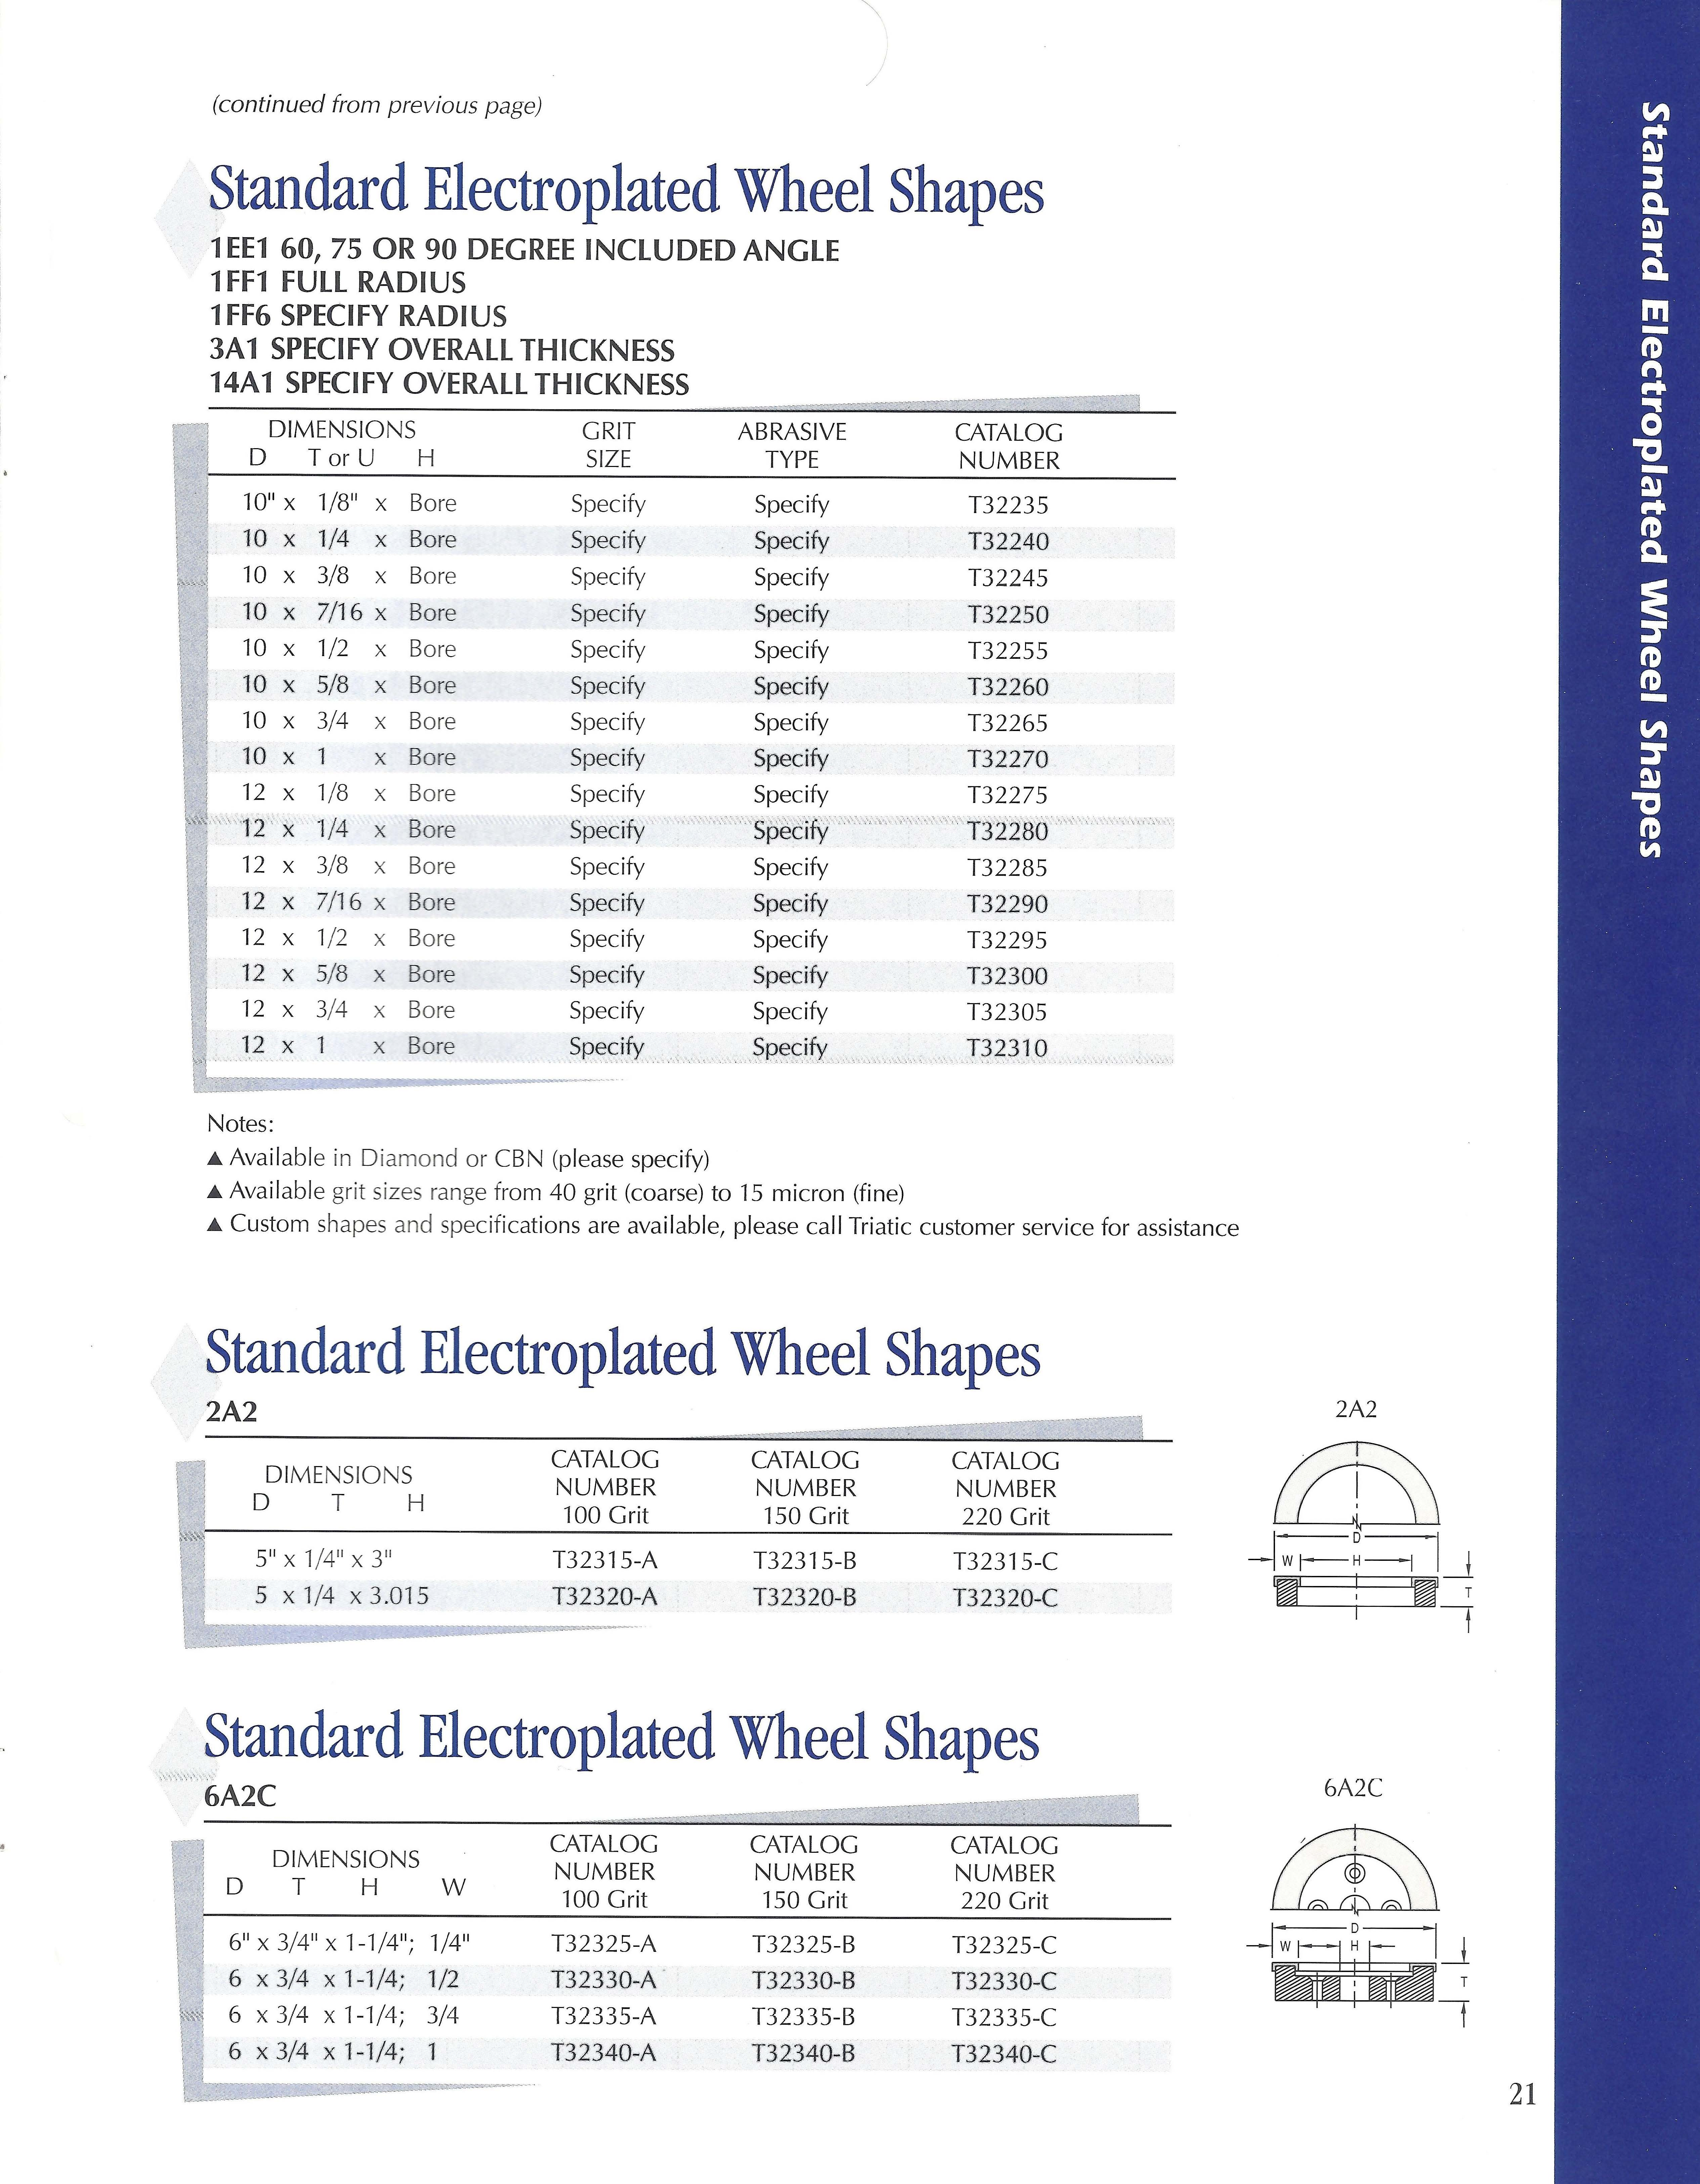 catalog-in-pdf-combined-page-21-image-0001.jpg